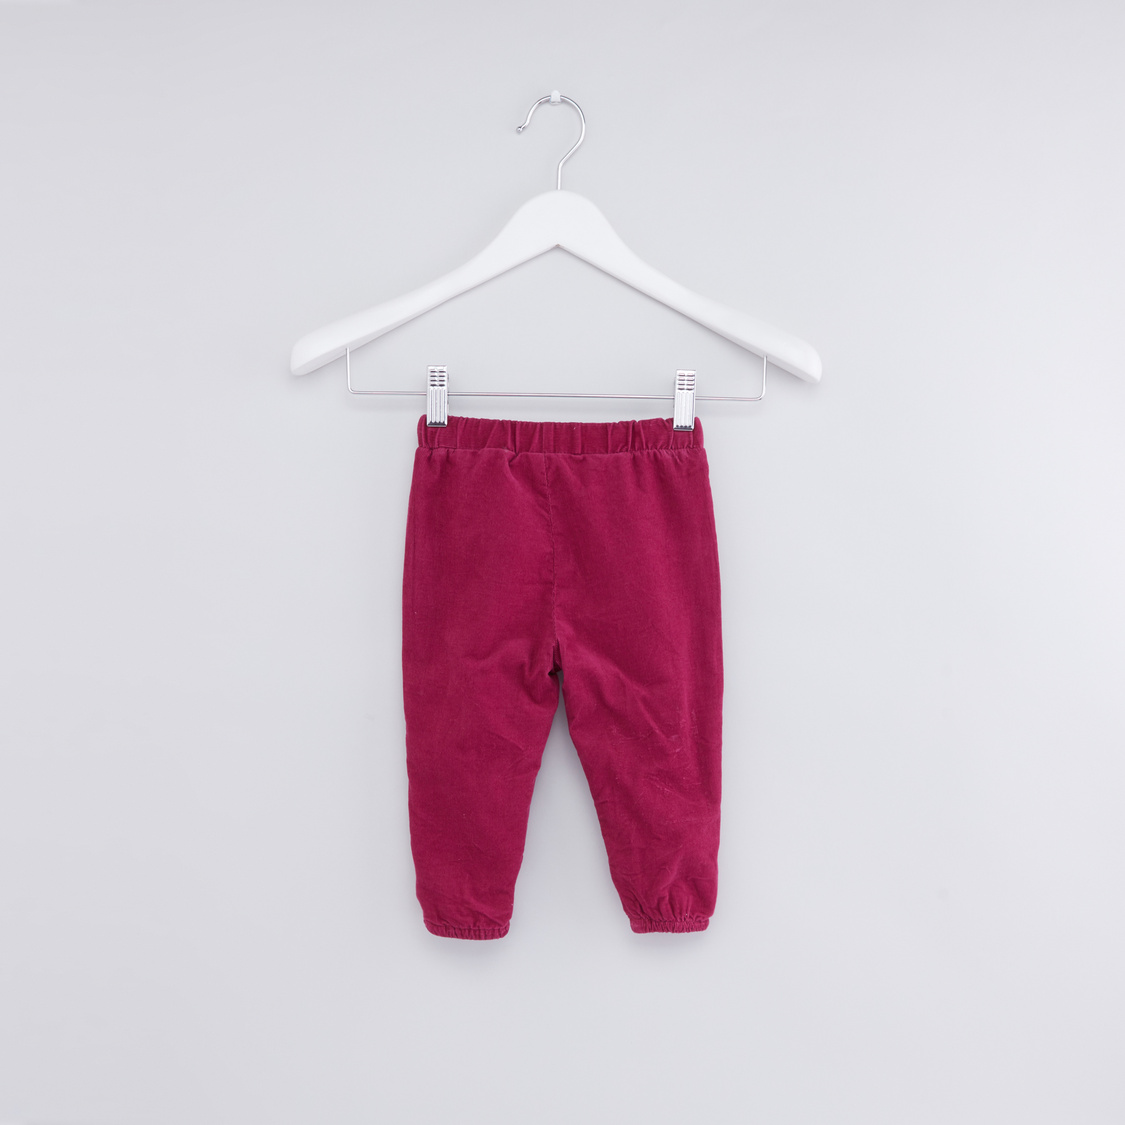 Textured Jog Pants with Elasticised Waistband and Bow Detail